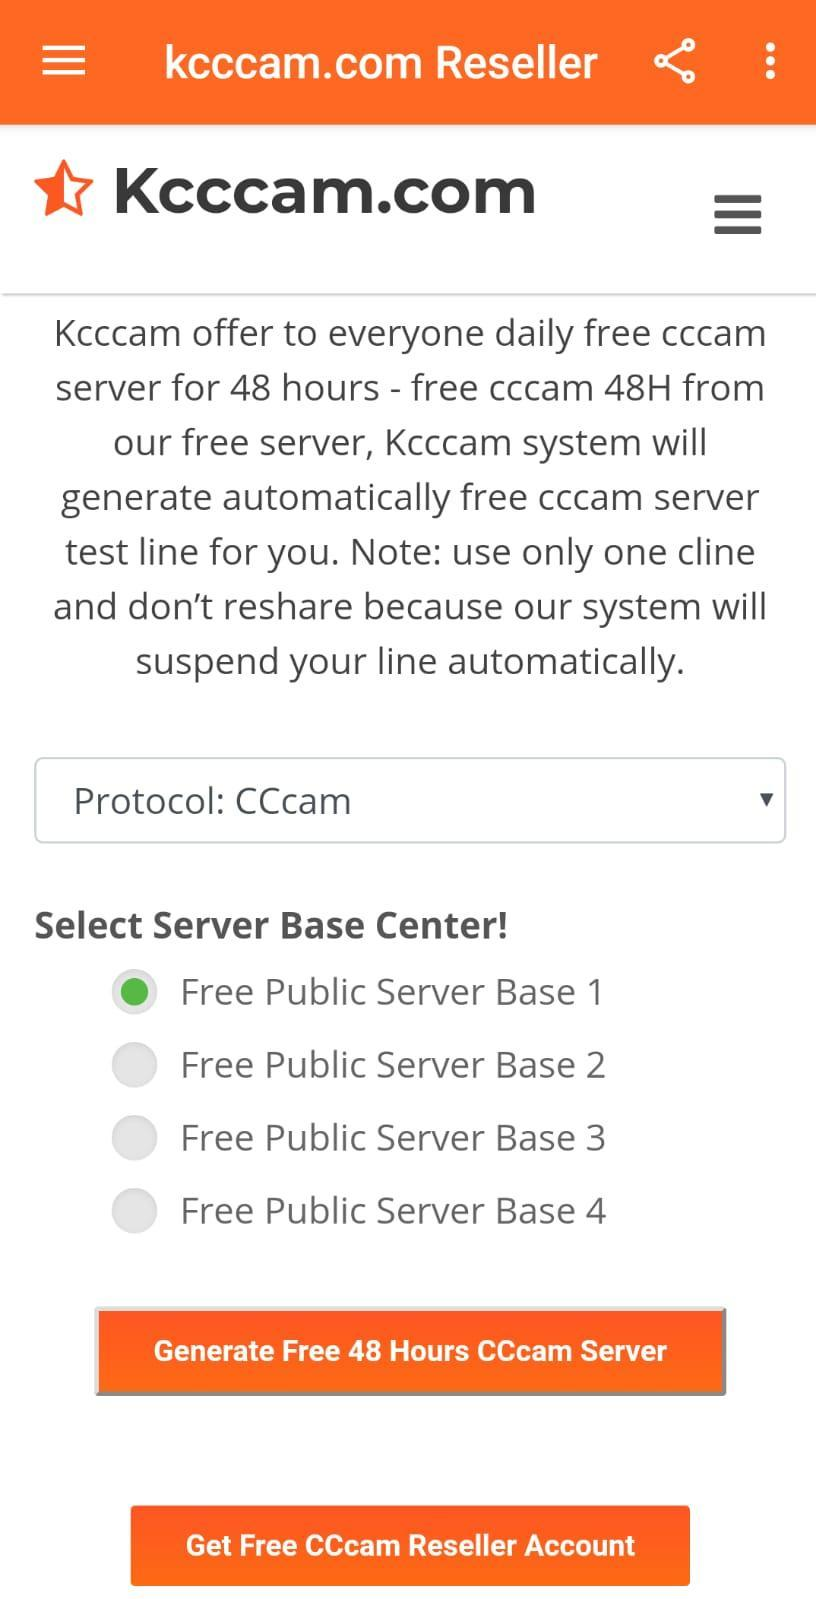 get your instant free cccam test line